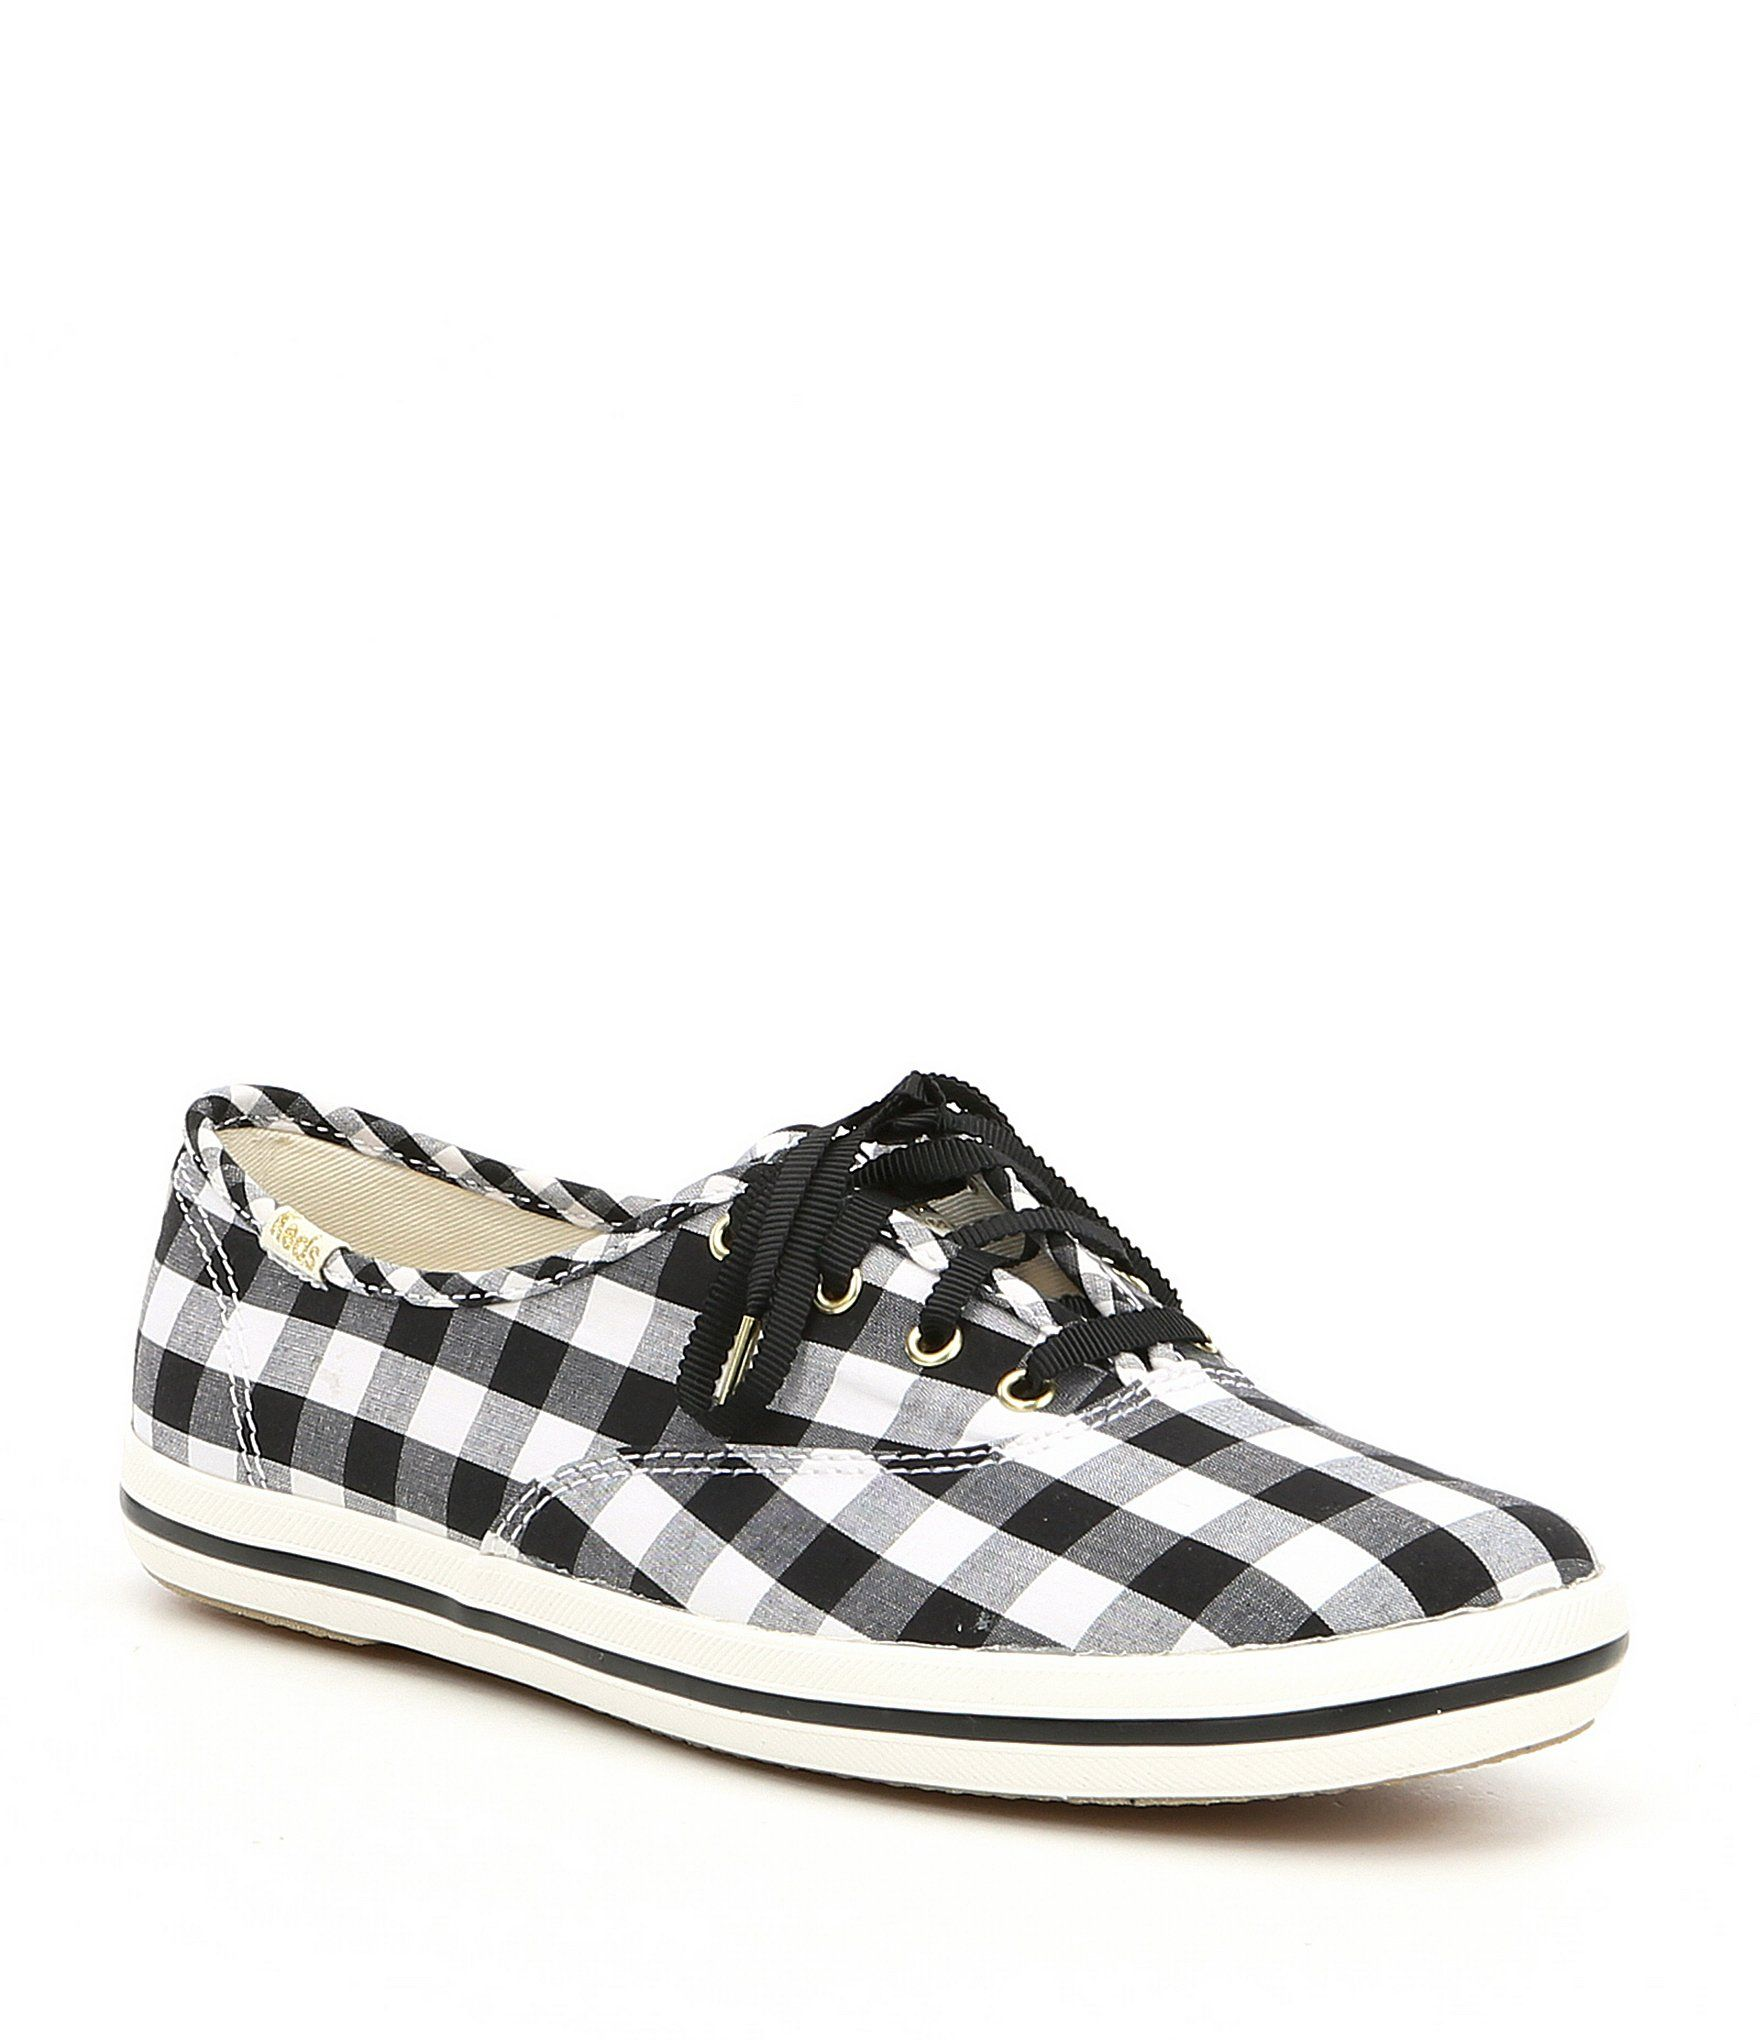 3992759aa9f keds x kate spade new york Champion Gingham Sneakers  Dillards ...